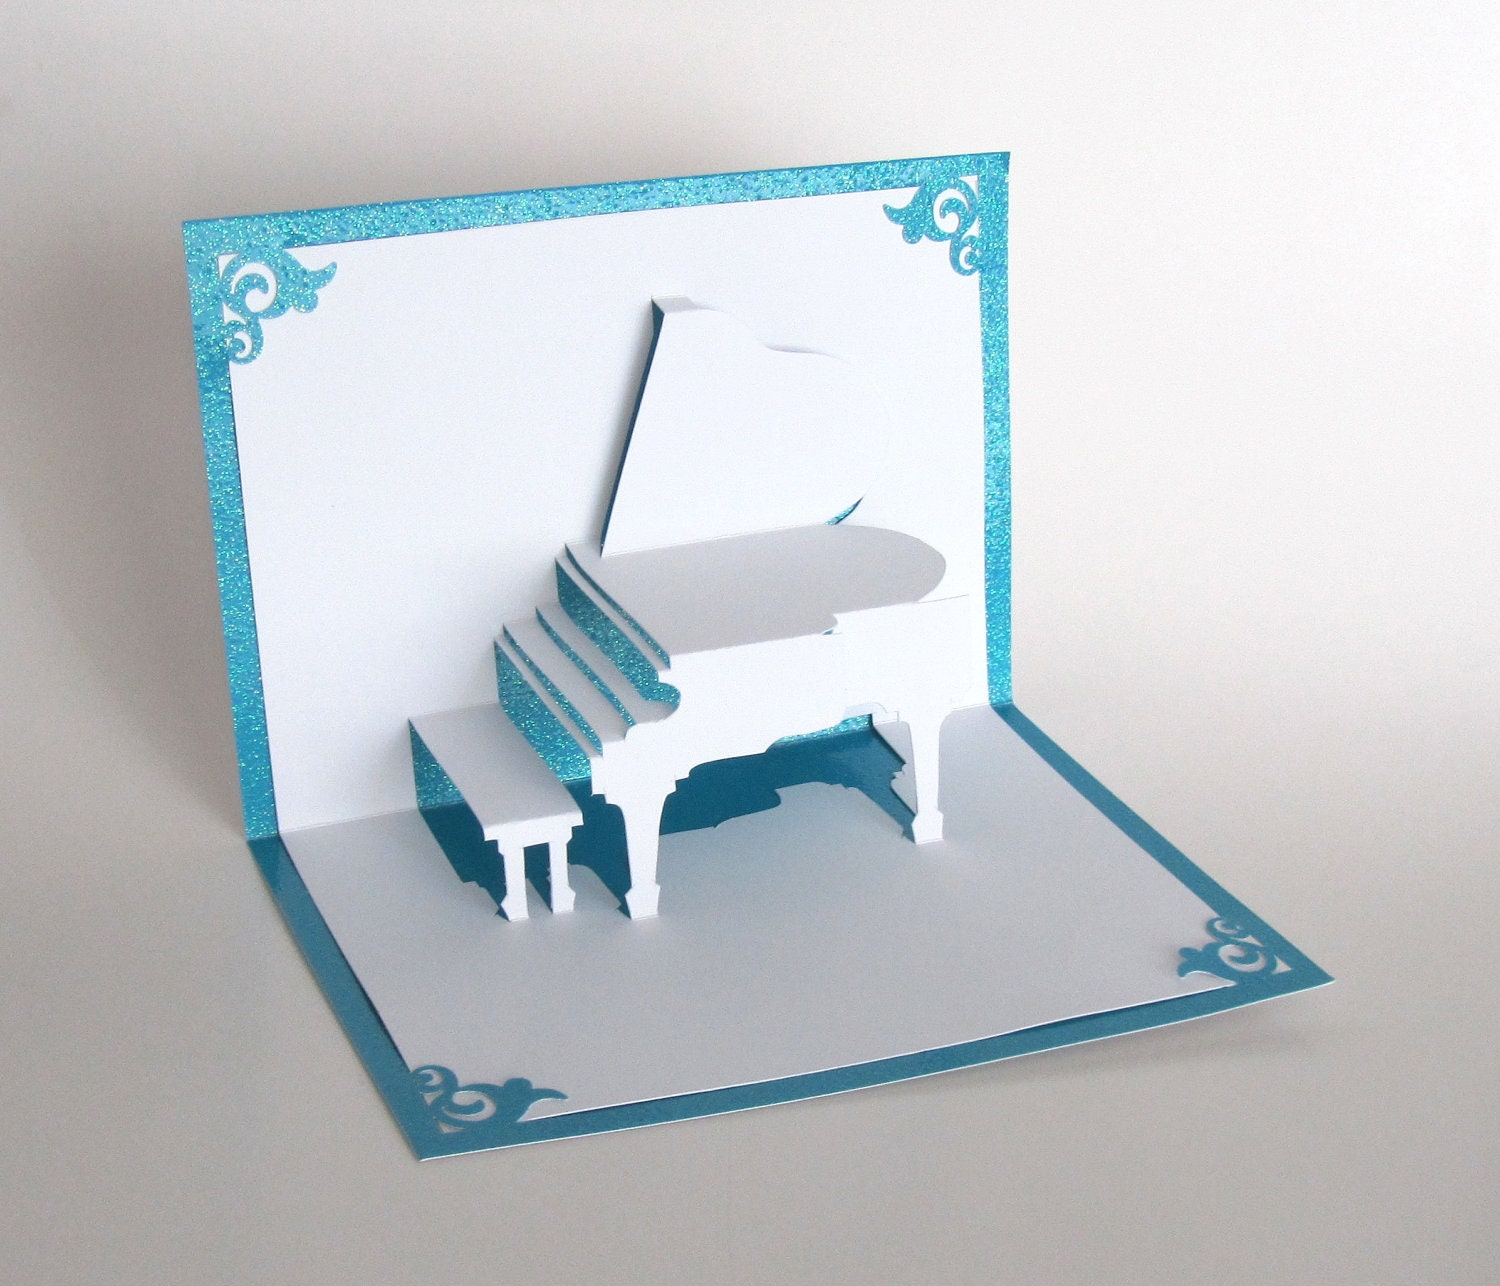 GRAND PIANO 3D PopUp Greeting Card Handmade Cut by Hand – Unique Birthday Cards to Make